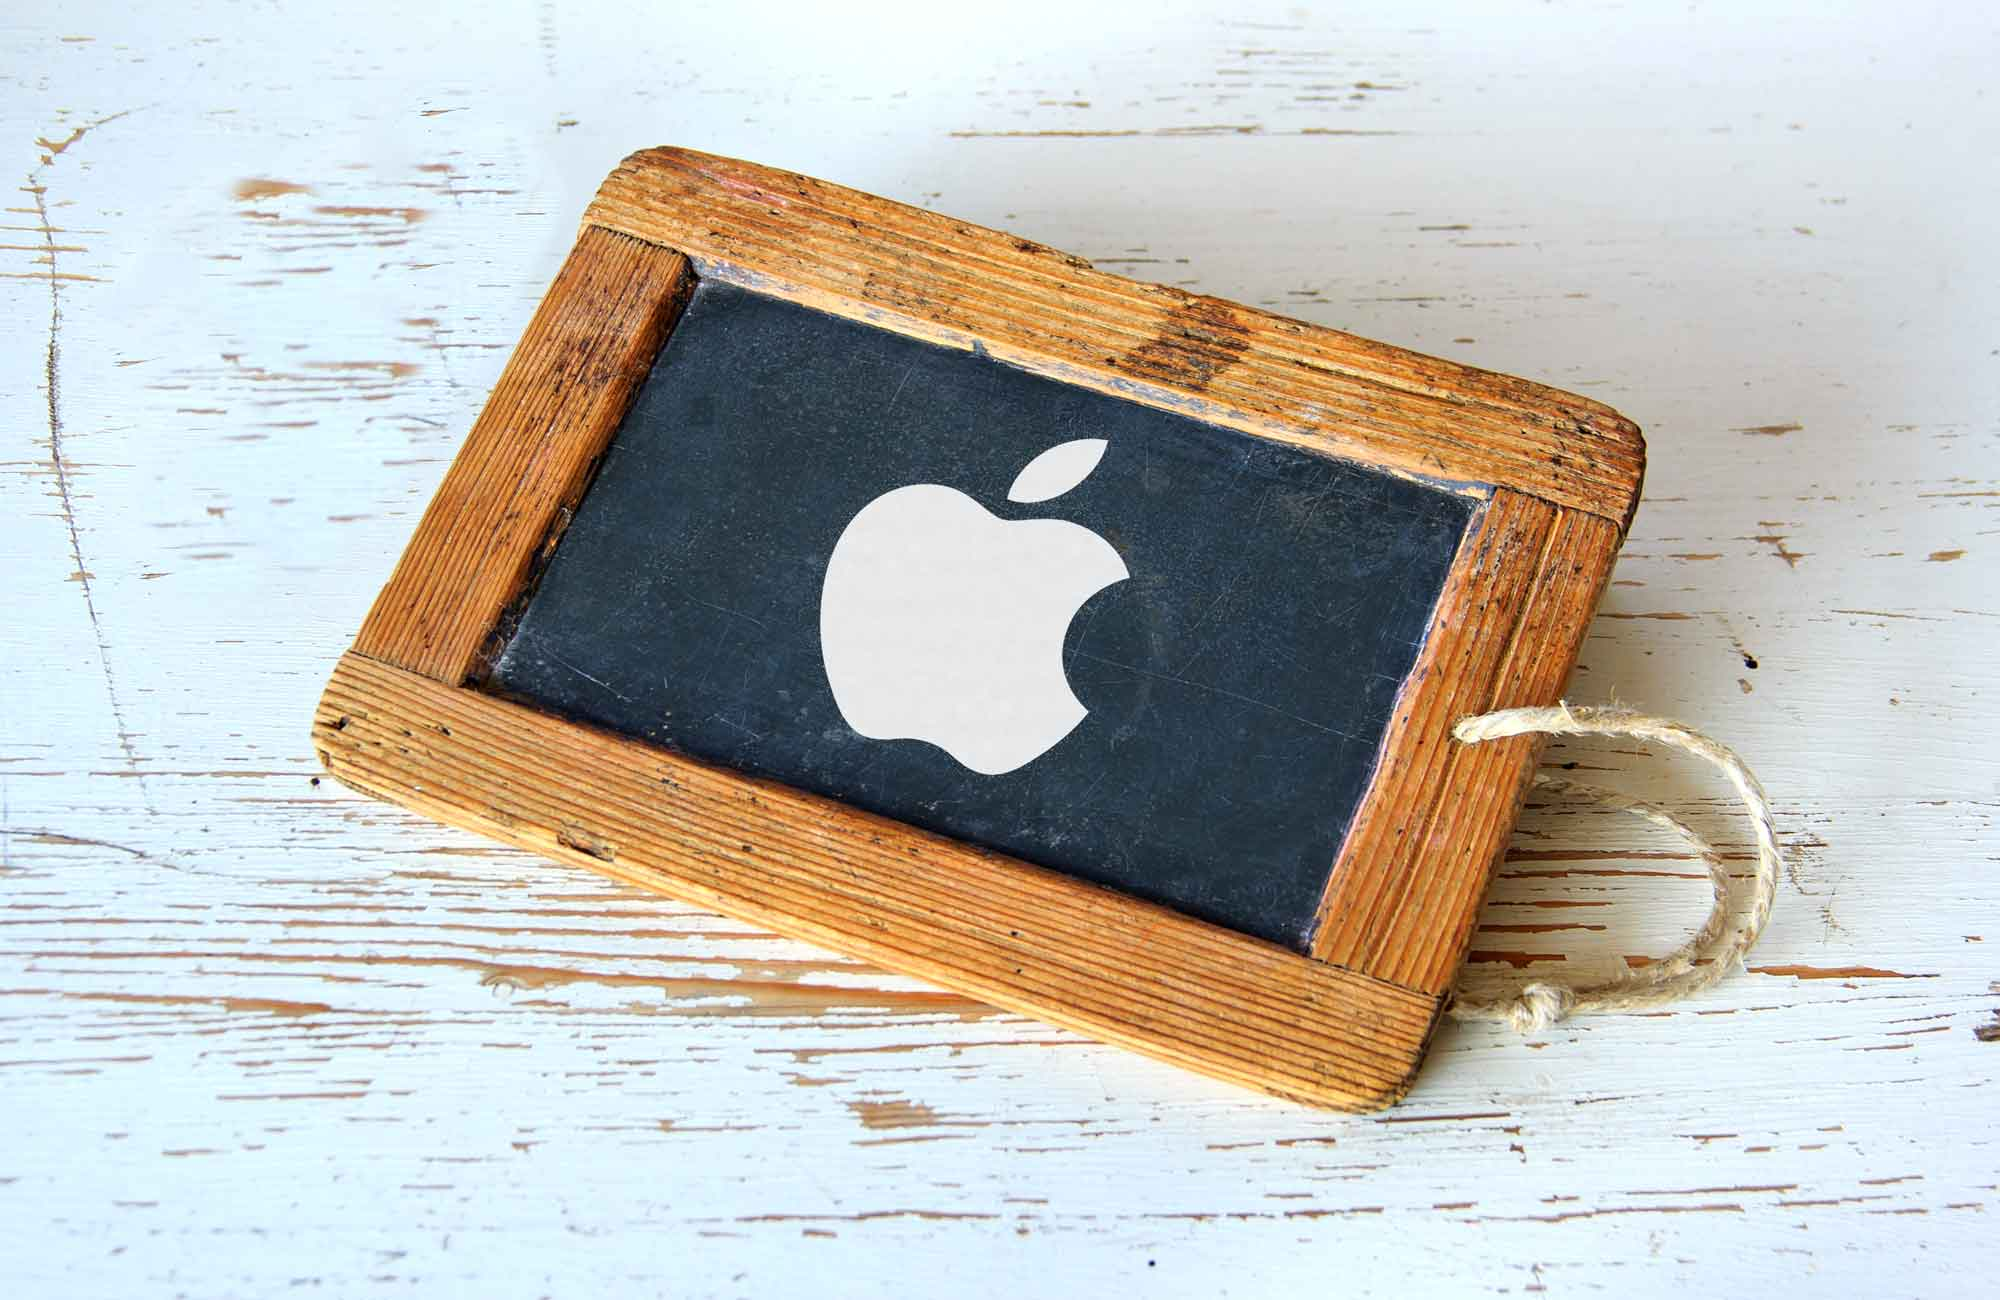 Will Apple Call Their New Tablet The iSlate?